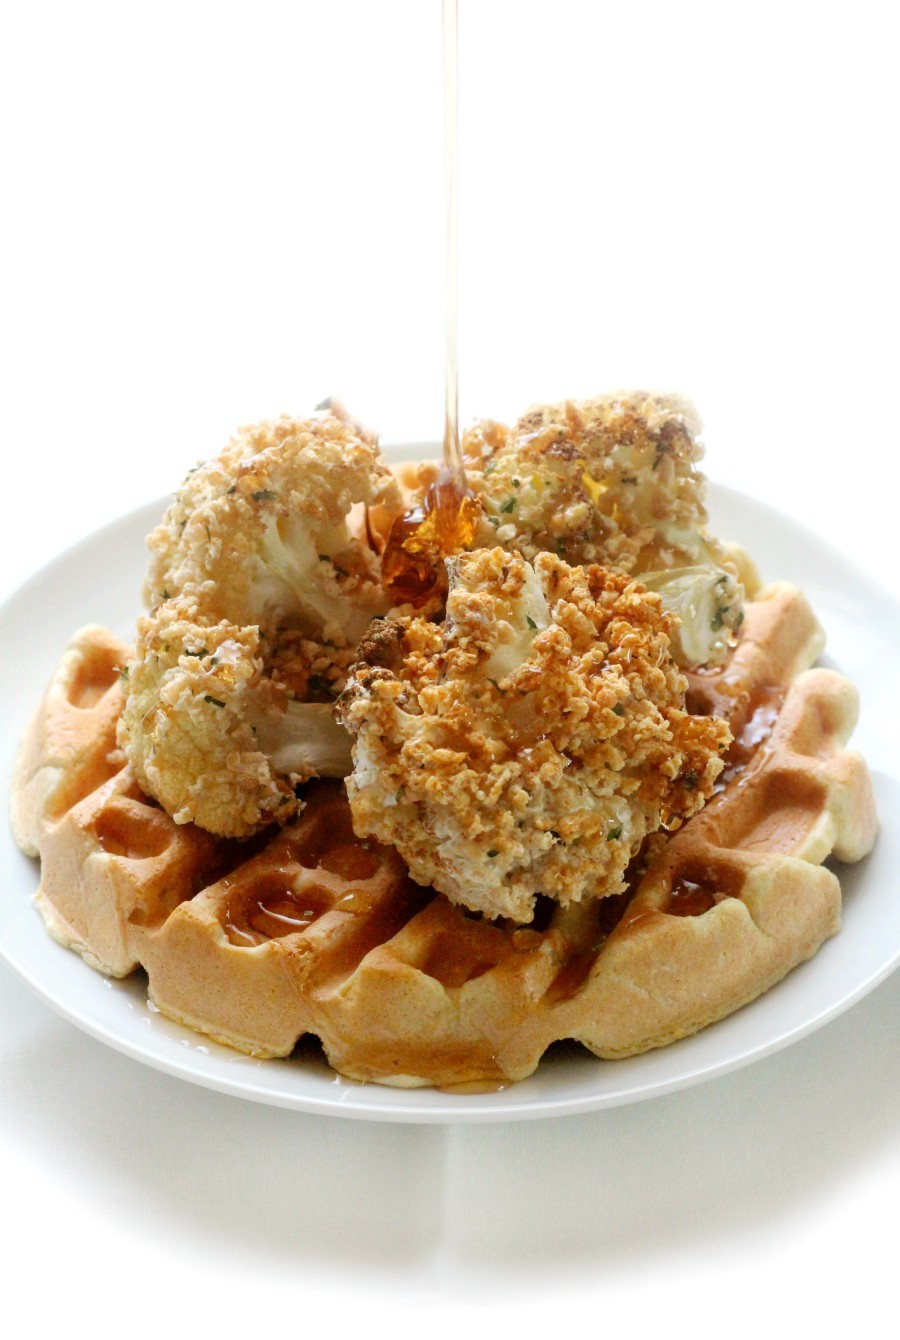 maple-syrup-pour-on-gluten-free-vegan-chicken-and-waffles